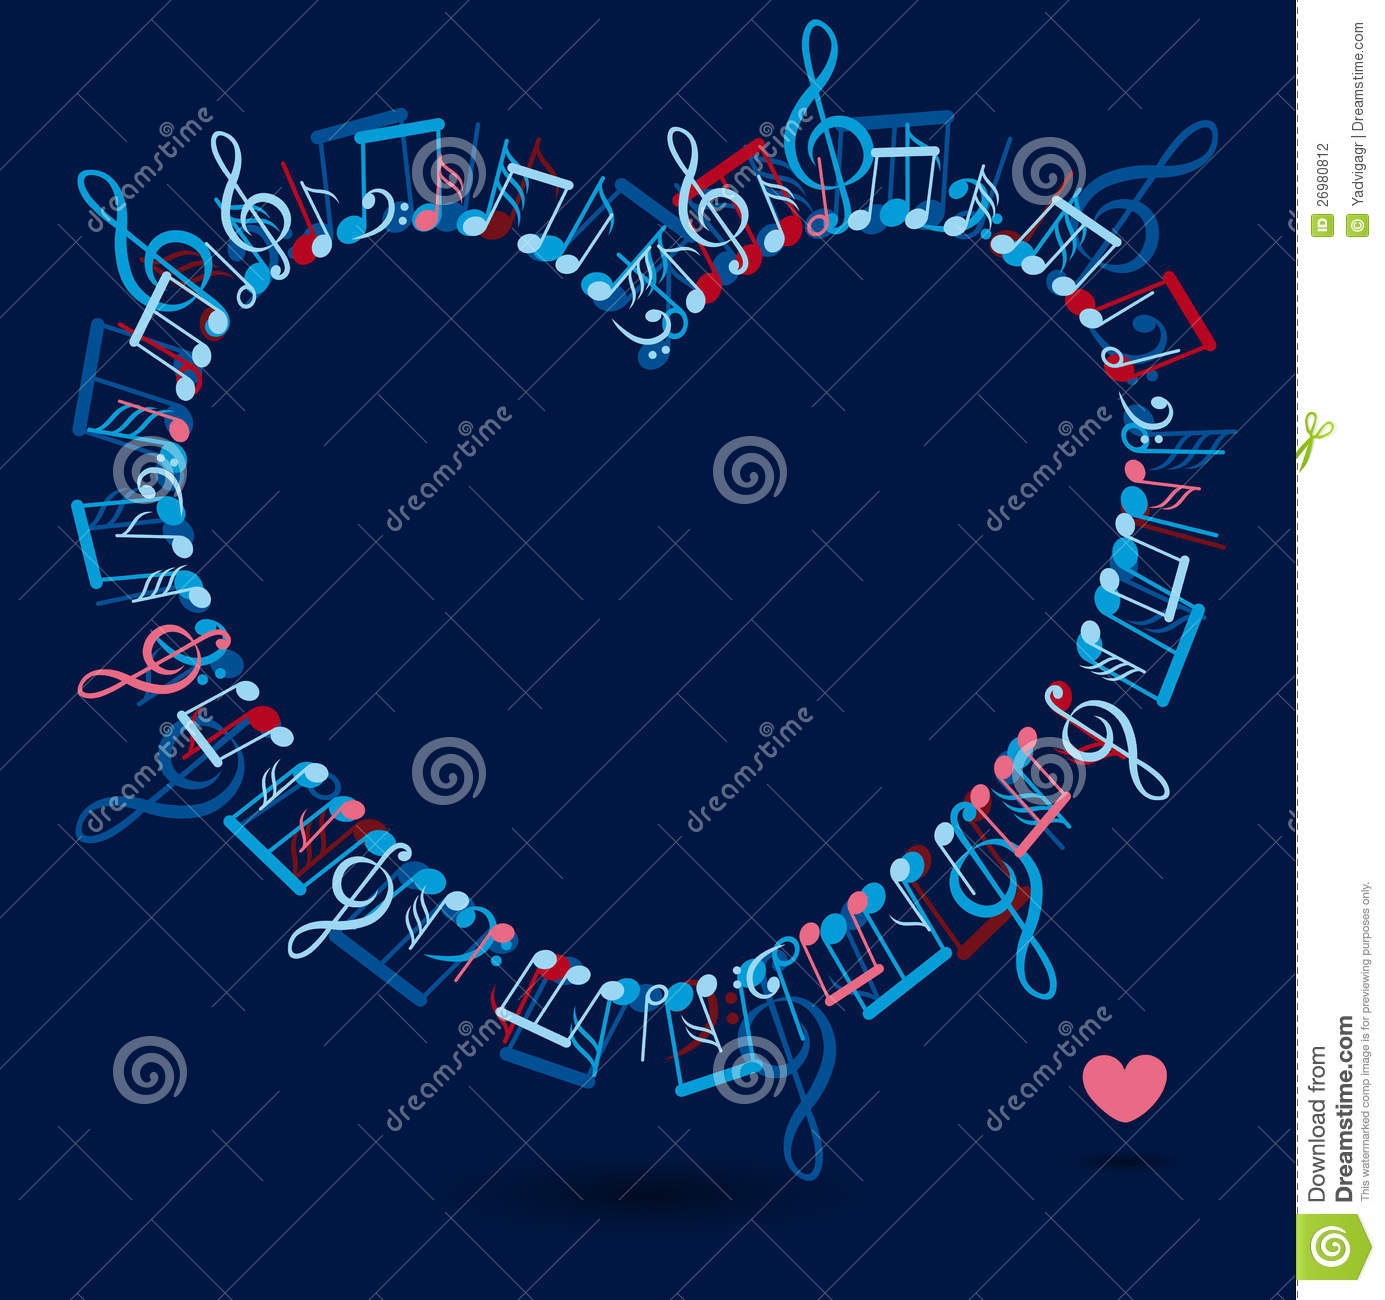 With Colorful Music Notes